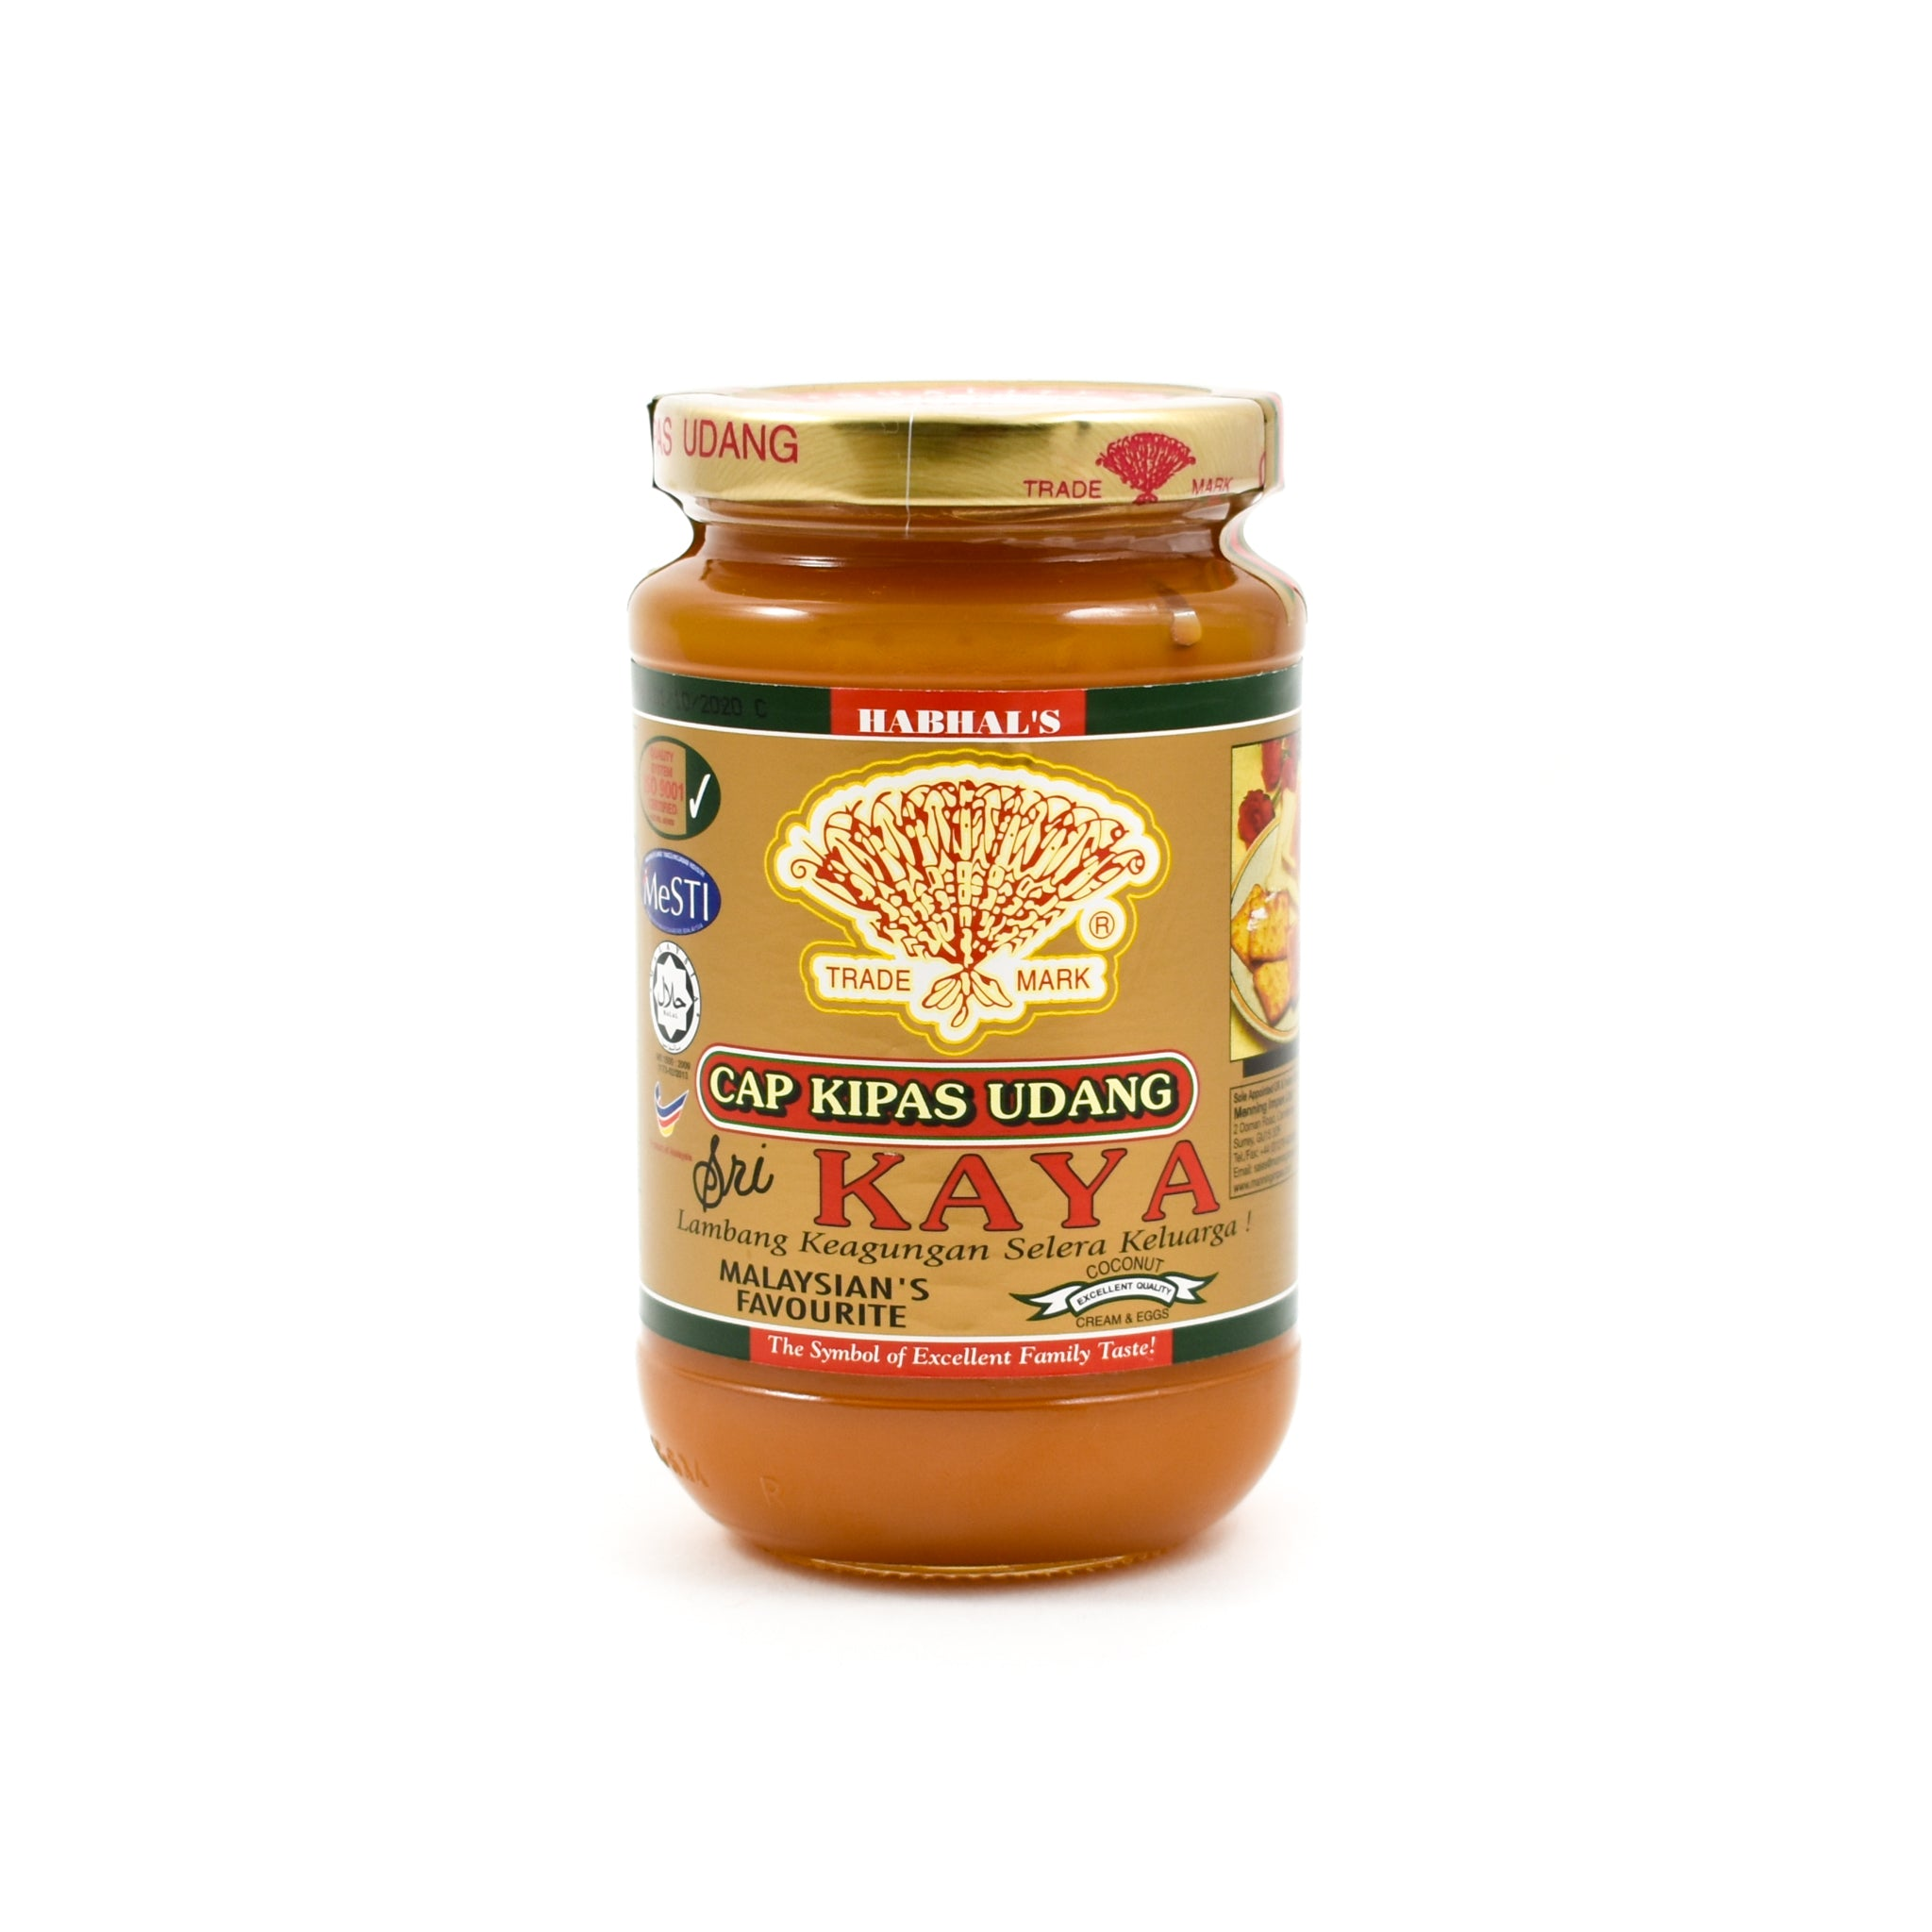 Habhal Sri Kaya Coconut Spread 420g Ingredients Jam Honey & Preserves Southeast Asian Food